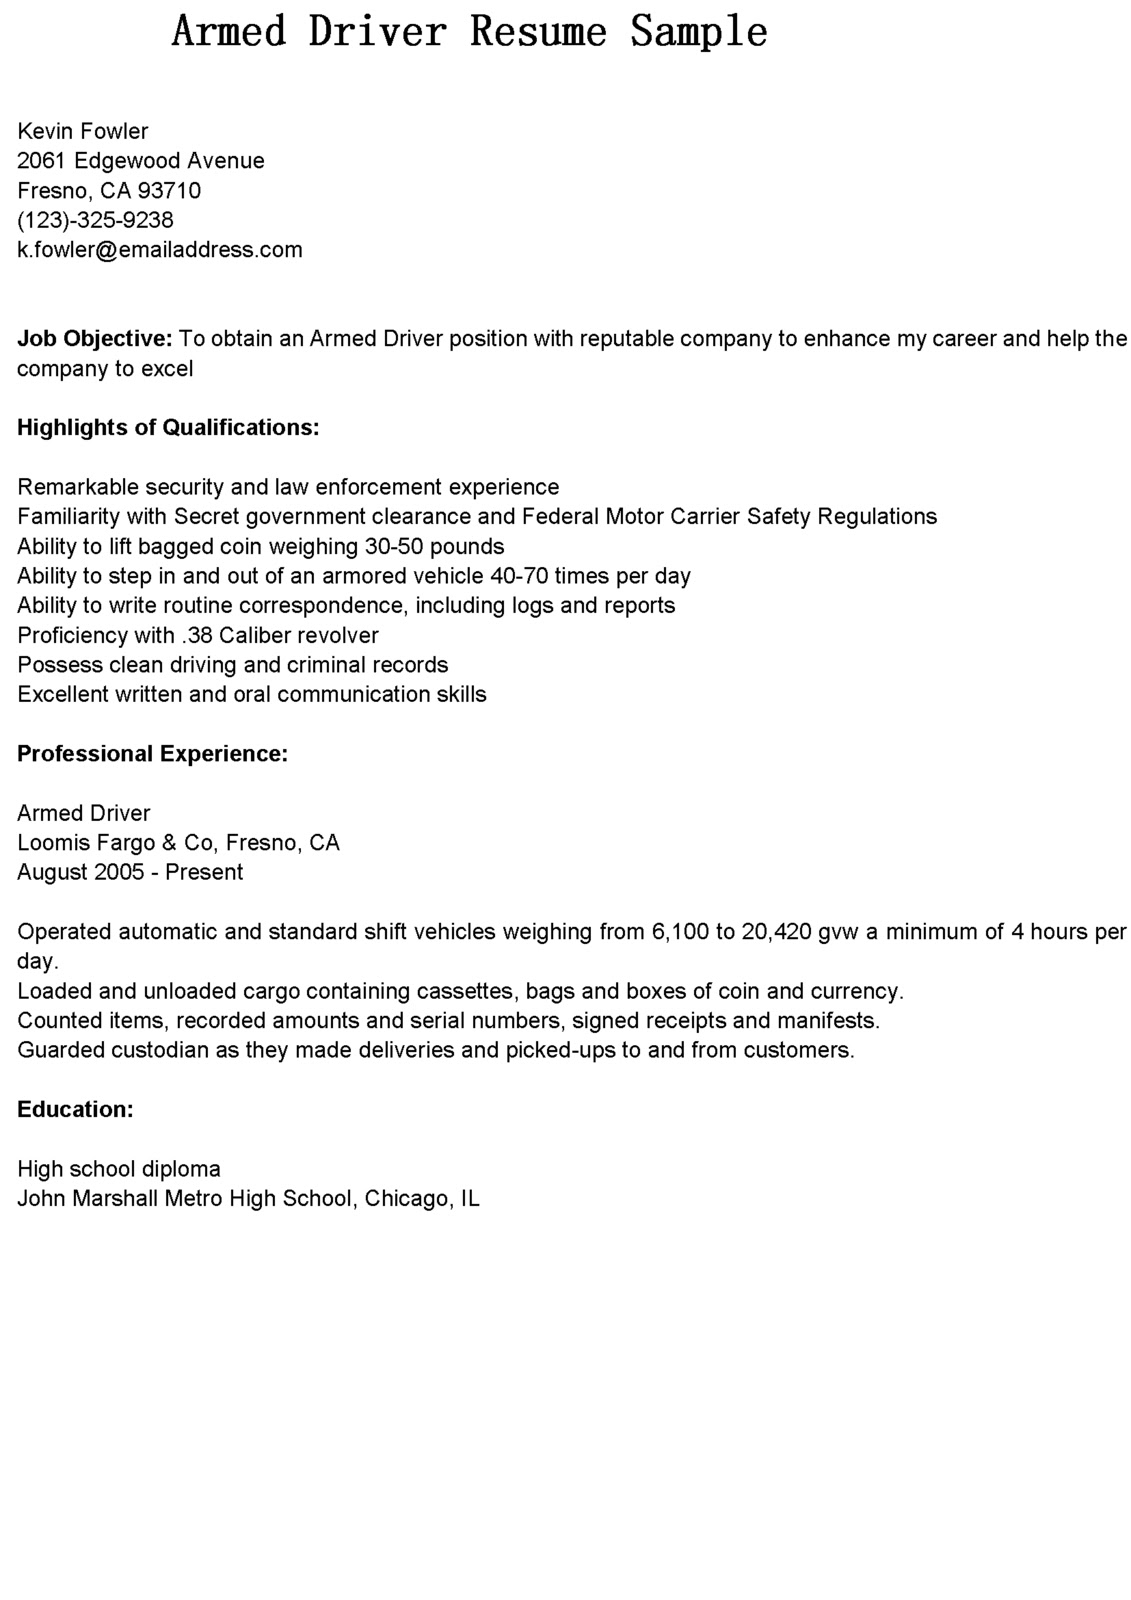 Cdl Resume Objective Examples Driver Resumes Armed Driver Resume Sample